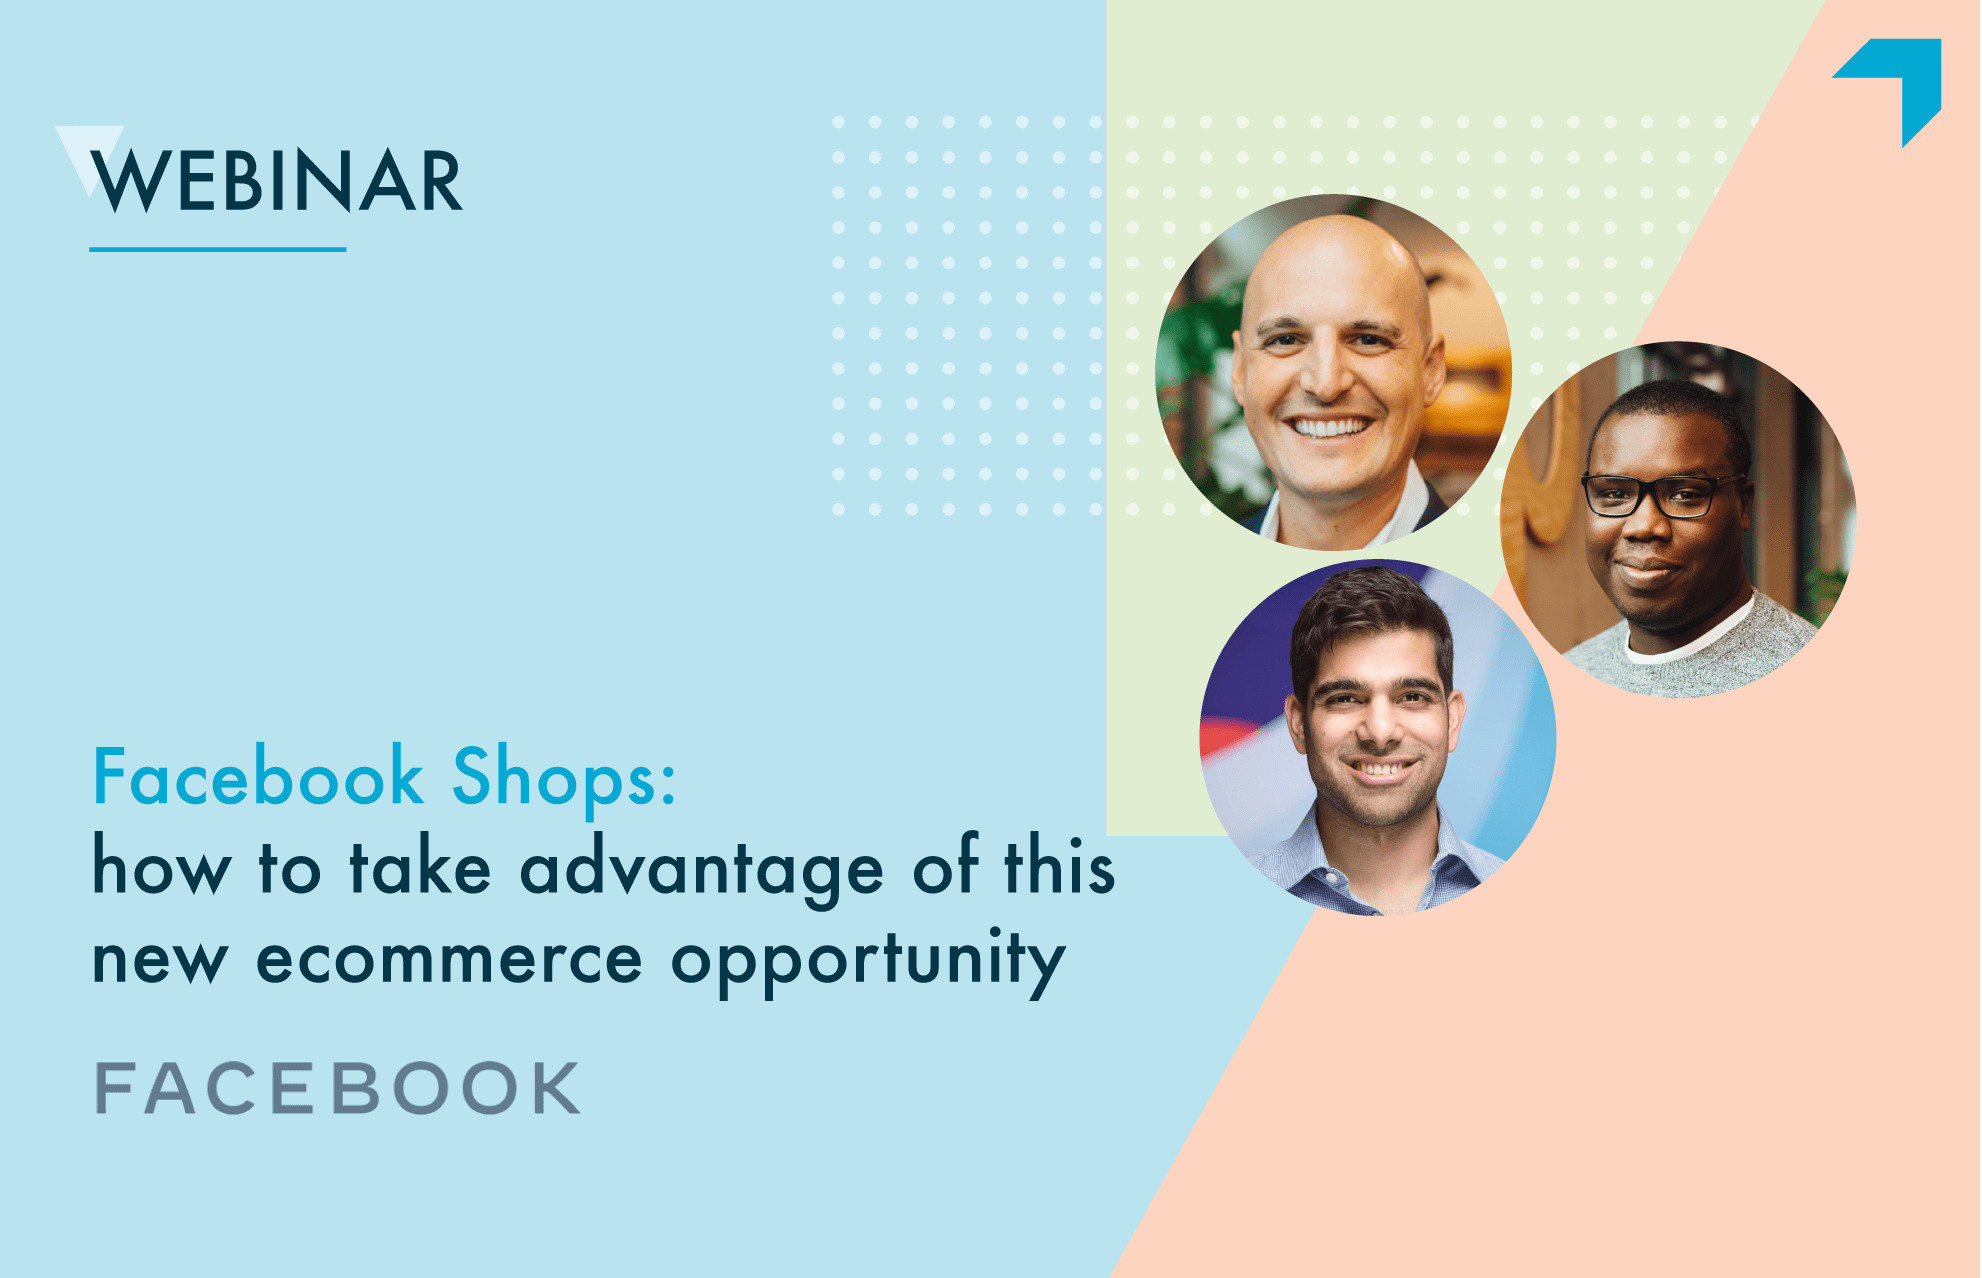 Facebook Shops: how to take advantage of this new ecommerce opportunity